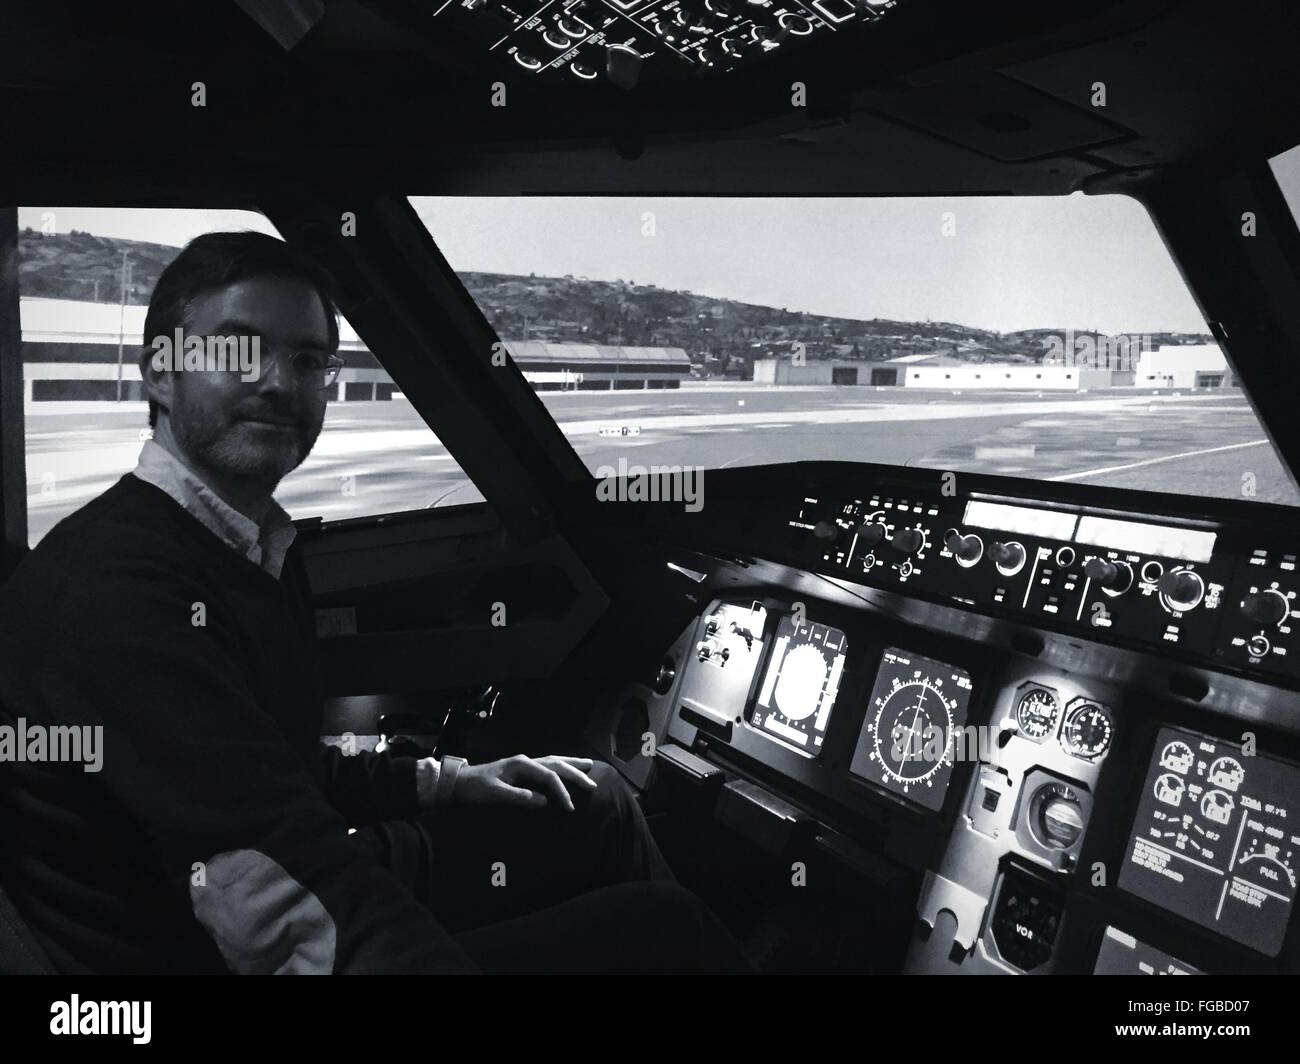 Portrait Of Mature Man Sitting At Cockpit In Airplane - Stock Image